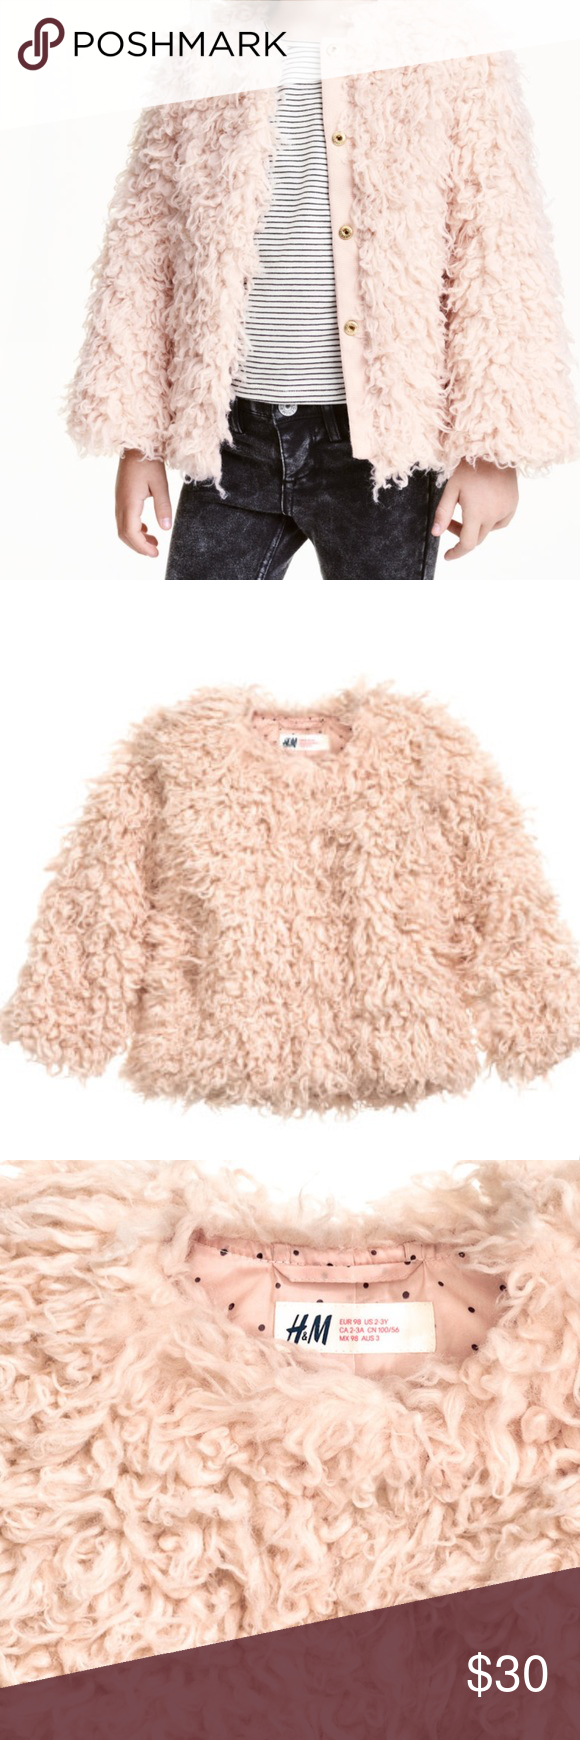 7fe55872b9a6 NWT H&M shaggy, faux fur, jacket NWT H&M (girl's size 7/8) Shaggy Faux Fur  Jacket, fabric is on photo #4. This fit me when I tried it on so it is  equivalent ...